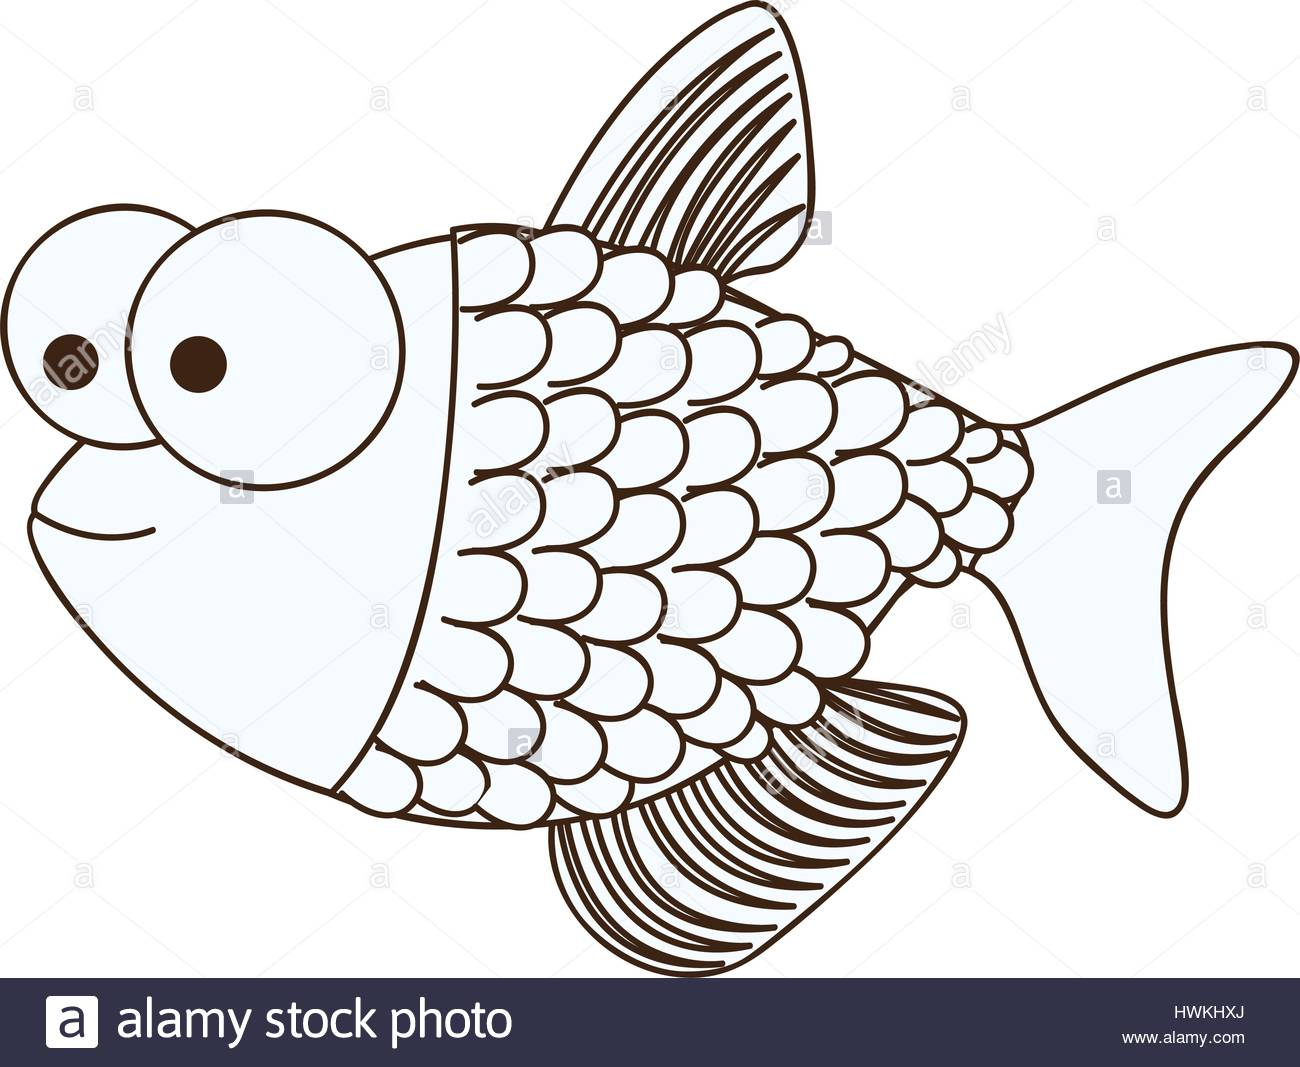 1300x1067 figure happy fish scalescartoon icon Stock Vector Art